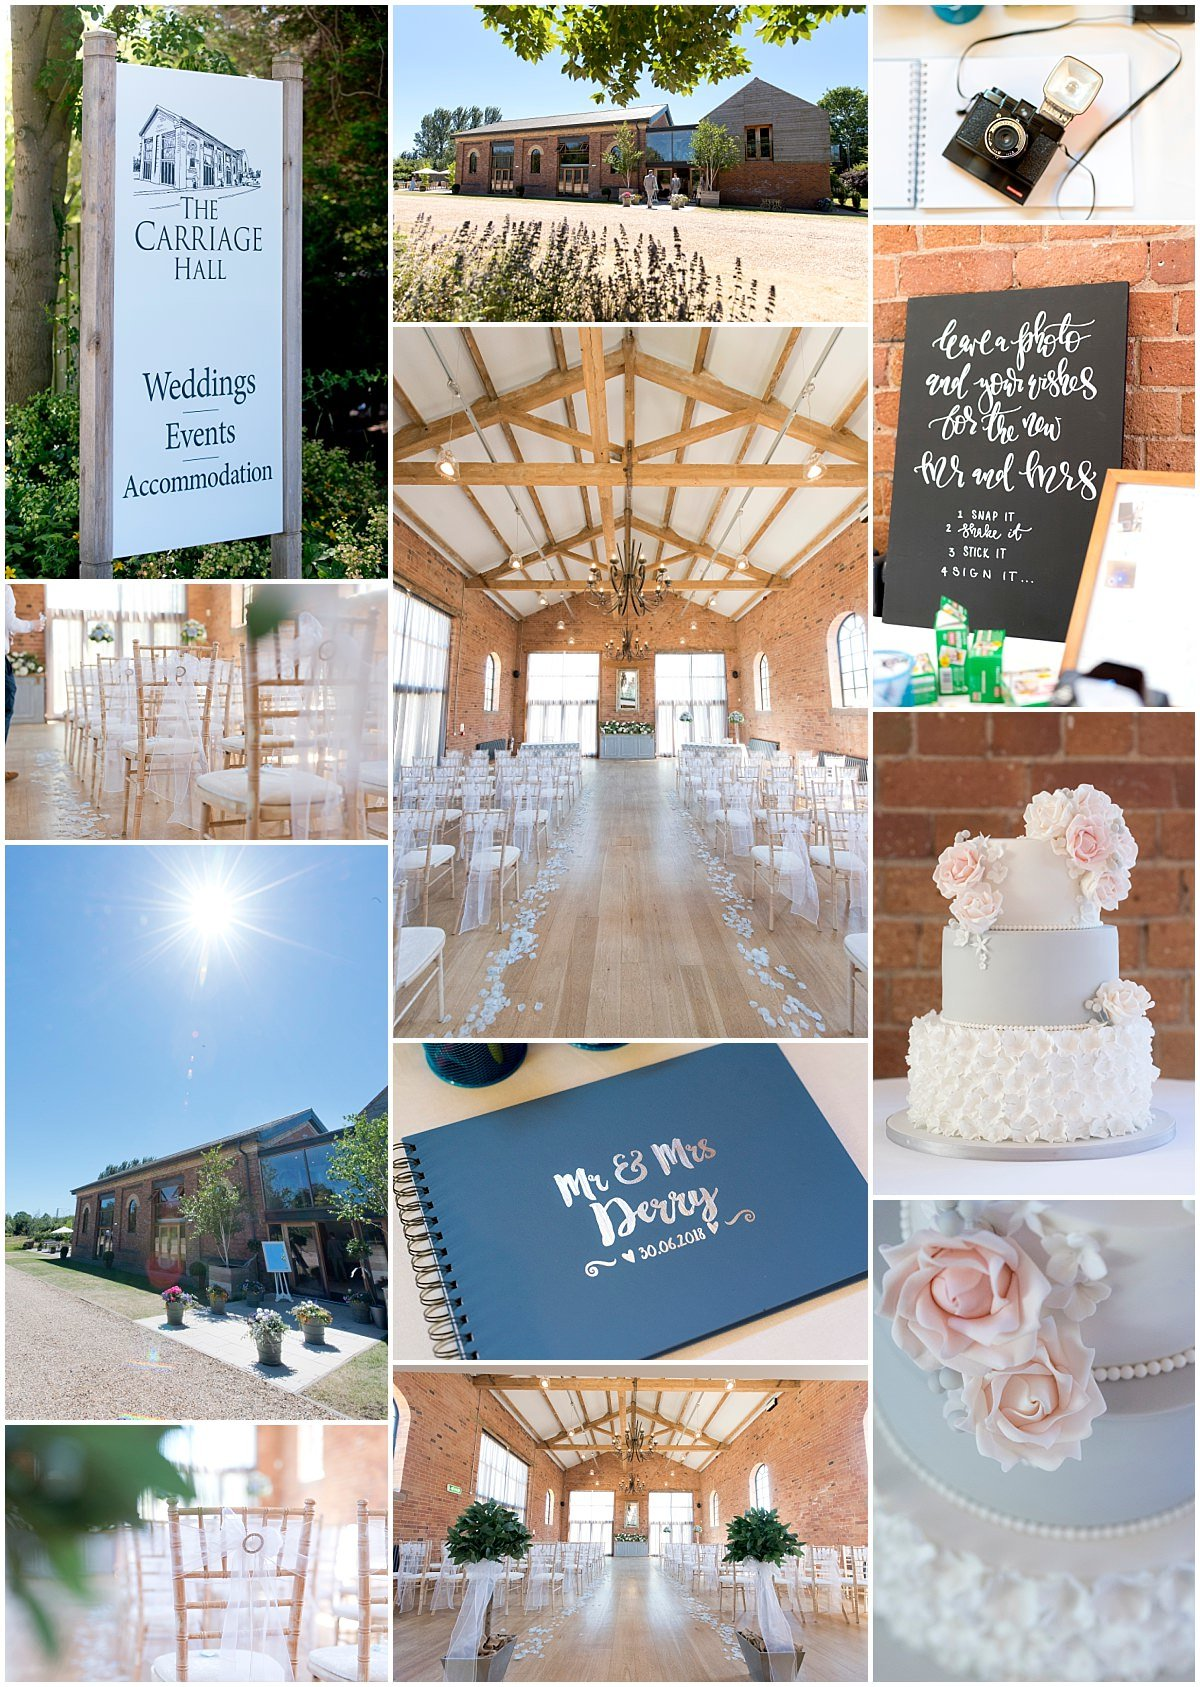 Summer Wedding at The Carriage Hall